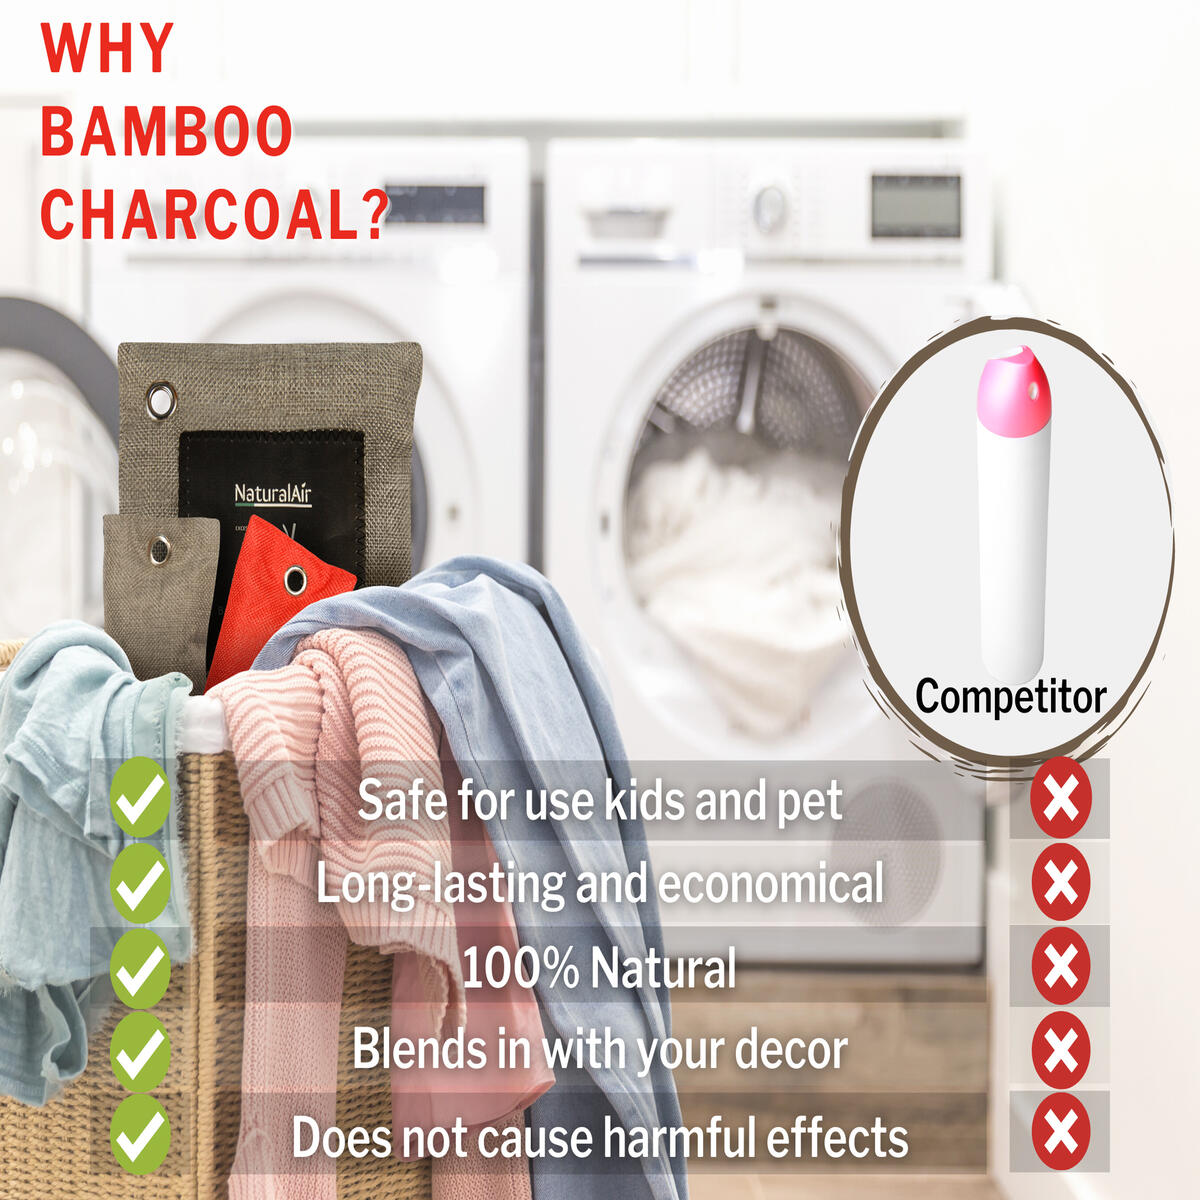 NaturalAir Activated Bamboo Charcoal Bag - Activated Charcoal bags for Home, Car, Office, Closet, Basement - (8 Pack 2x200g, 6x75g and 2 Pack Refrigerator bags)